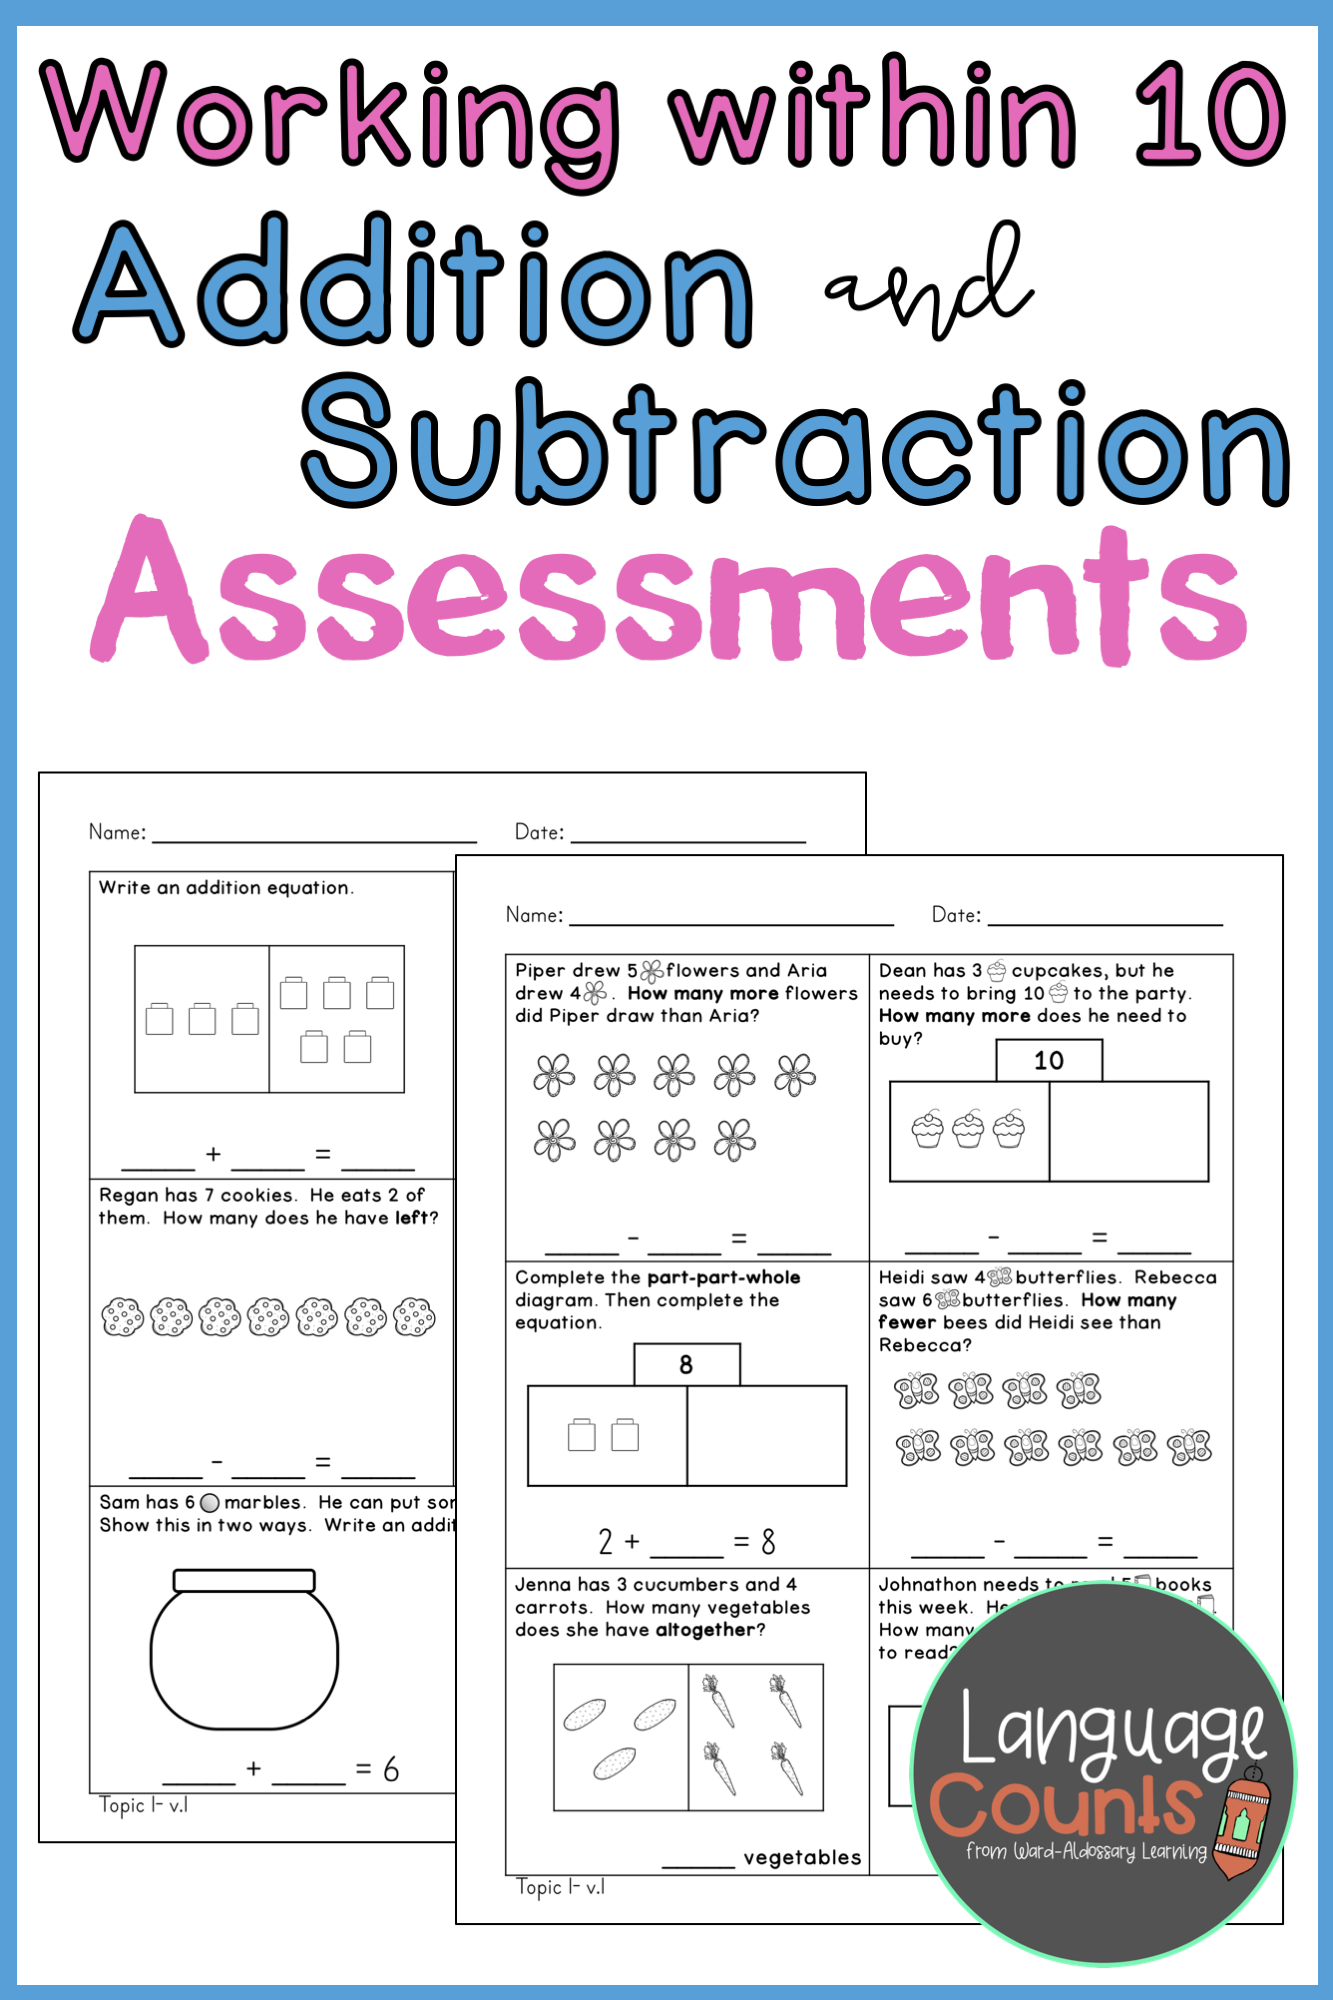 Assess Your Students Mastery Of Addition And Subtraction Concepts With Word Problems To 10 Wi Word Problems Addition And Subtraction Subtraction Word Problems [ 2000 x 1333 Pixel ]